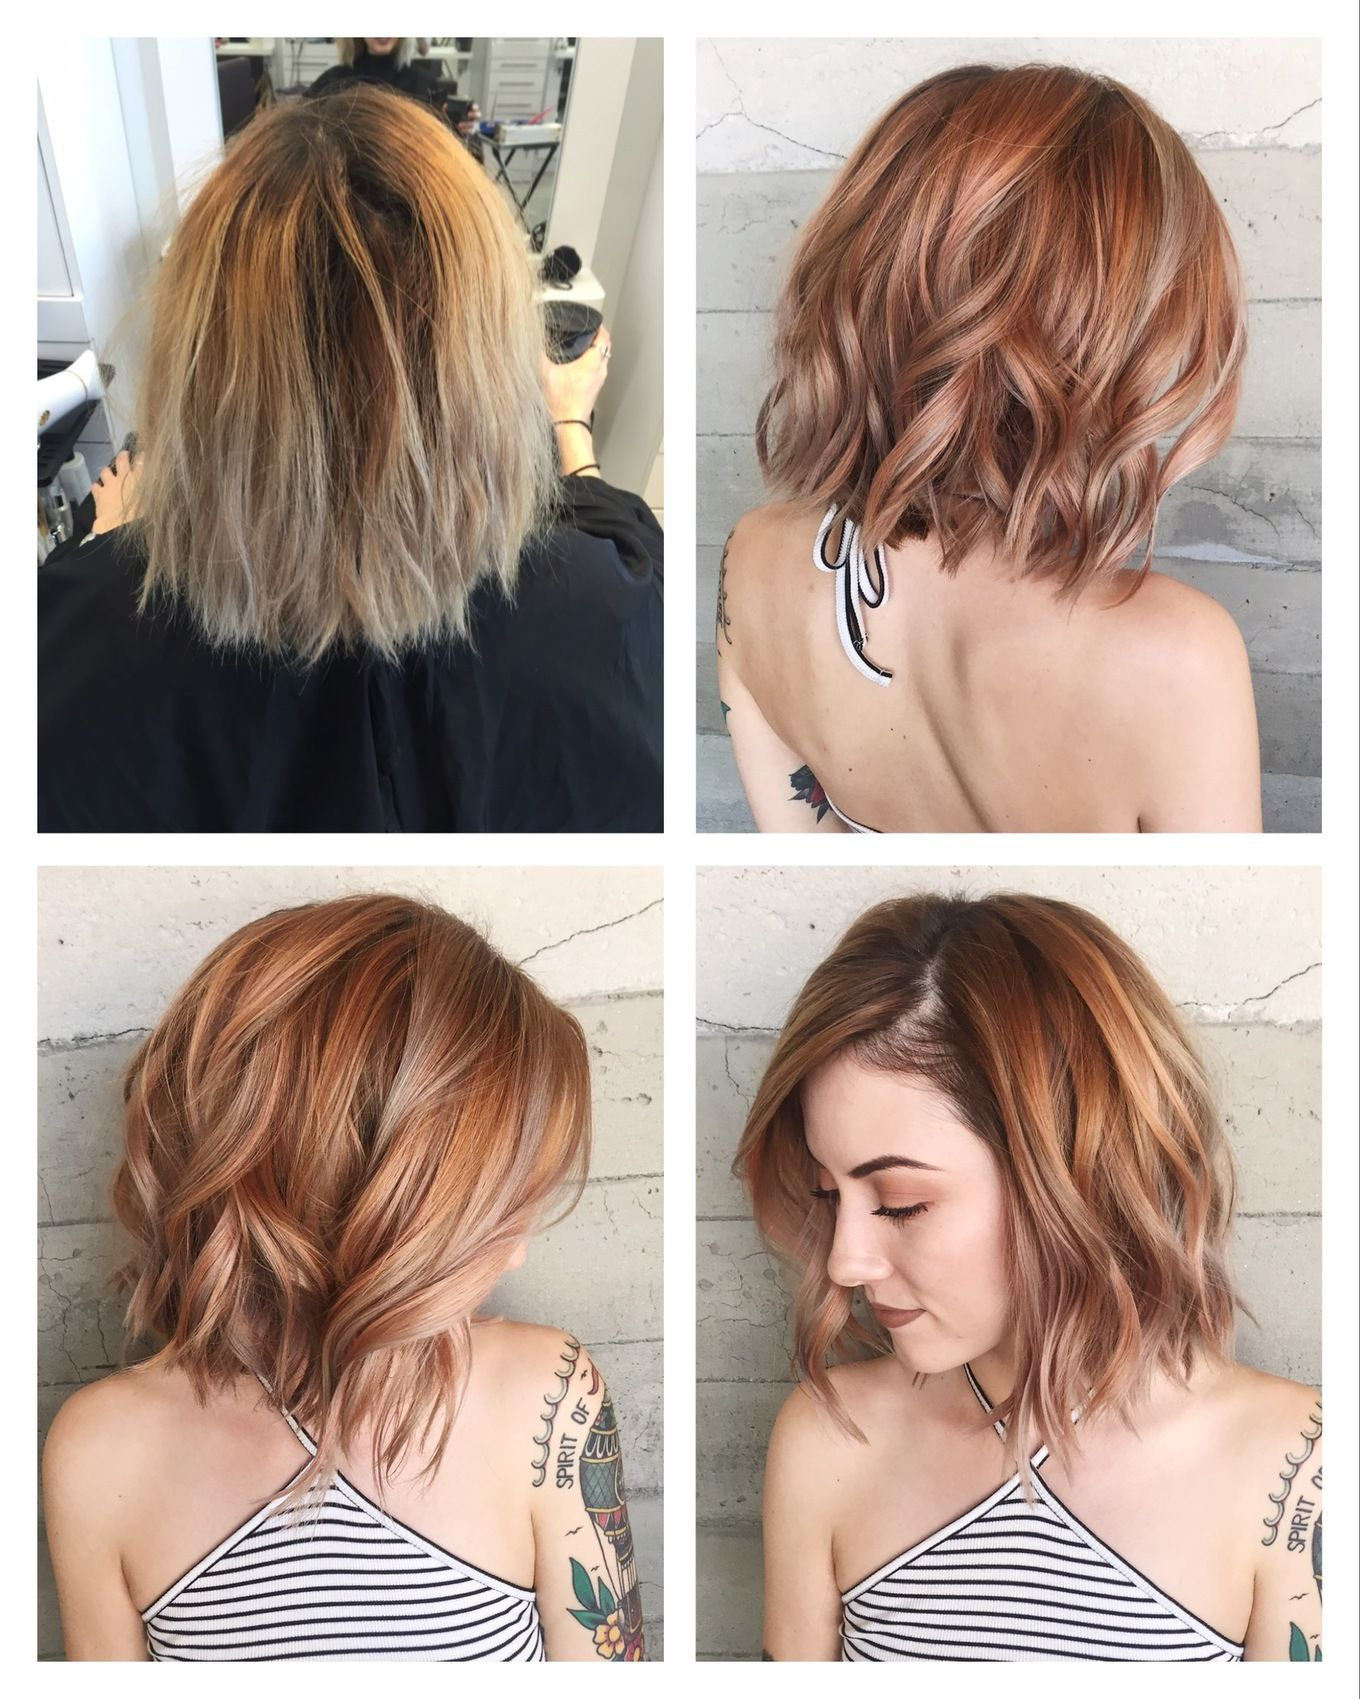 Lots of makeovers. Silver, rose gold, pink, balayage, and jewel tones. - Album on Imgur